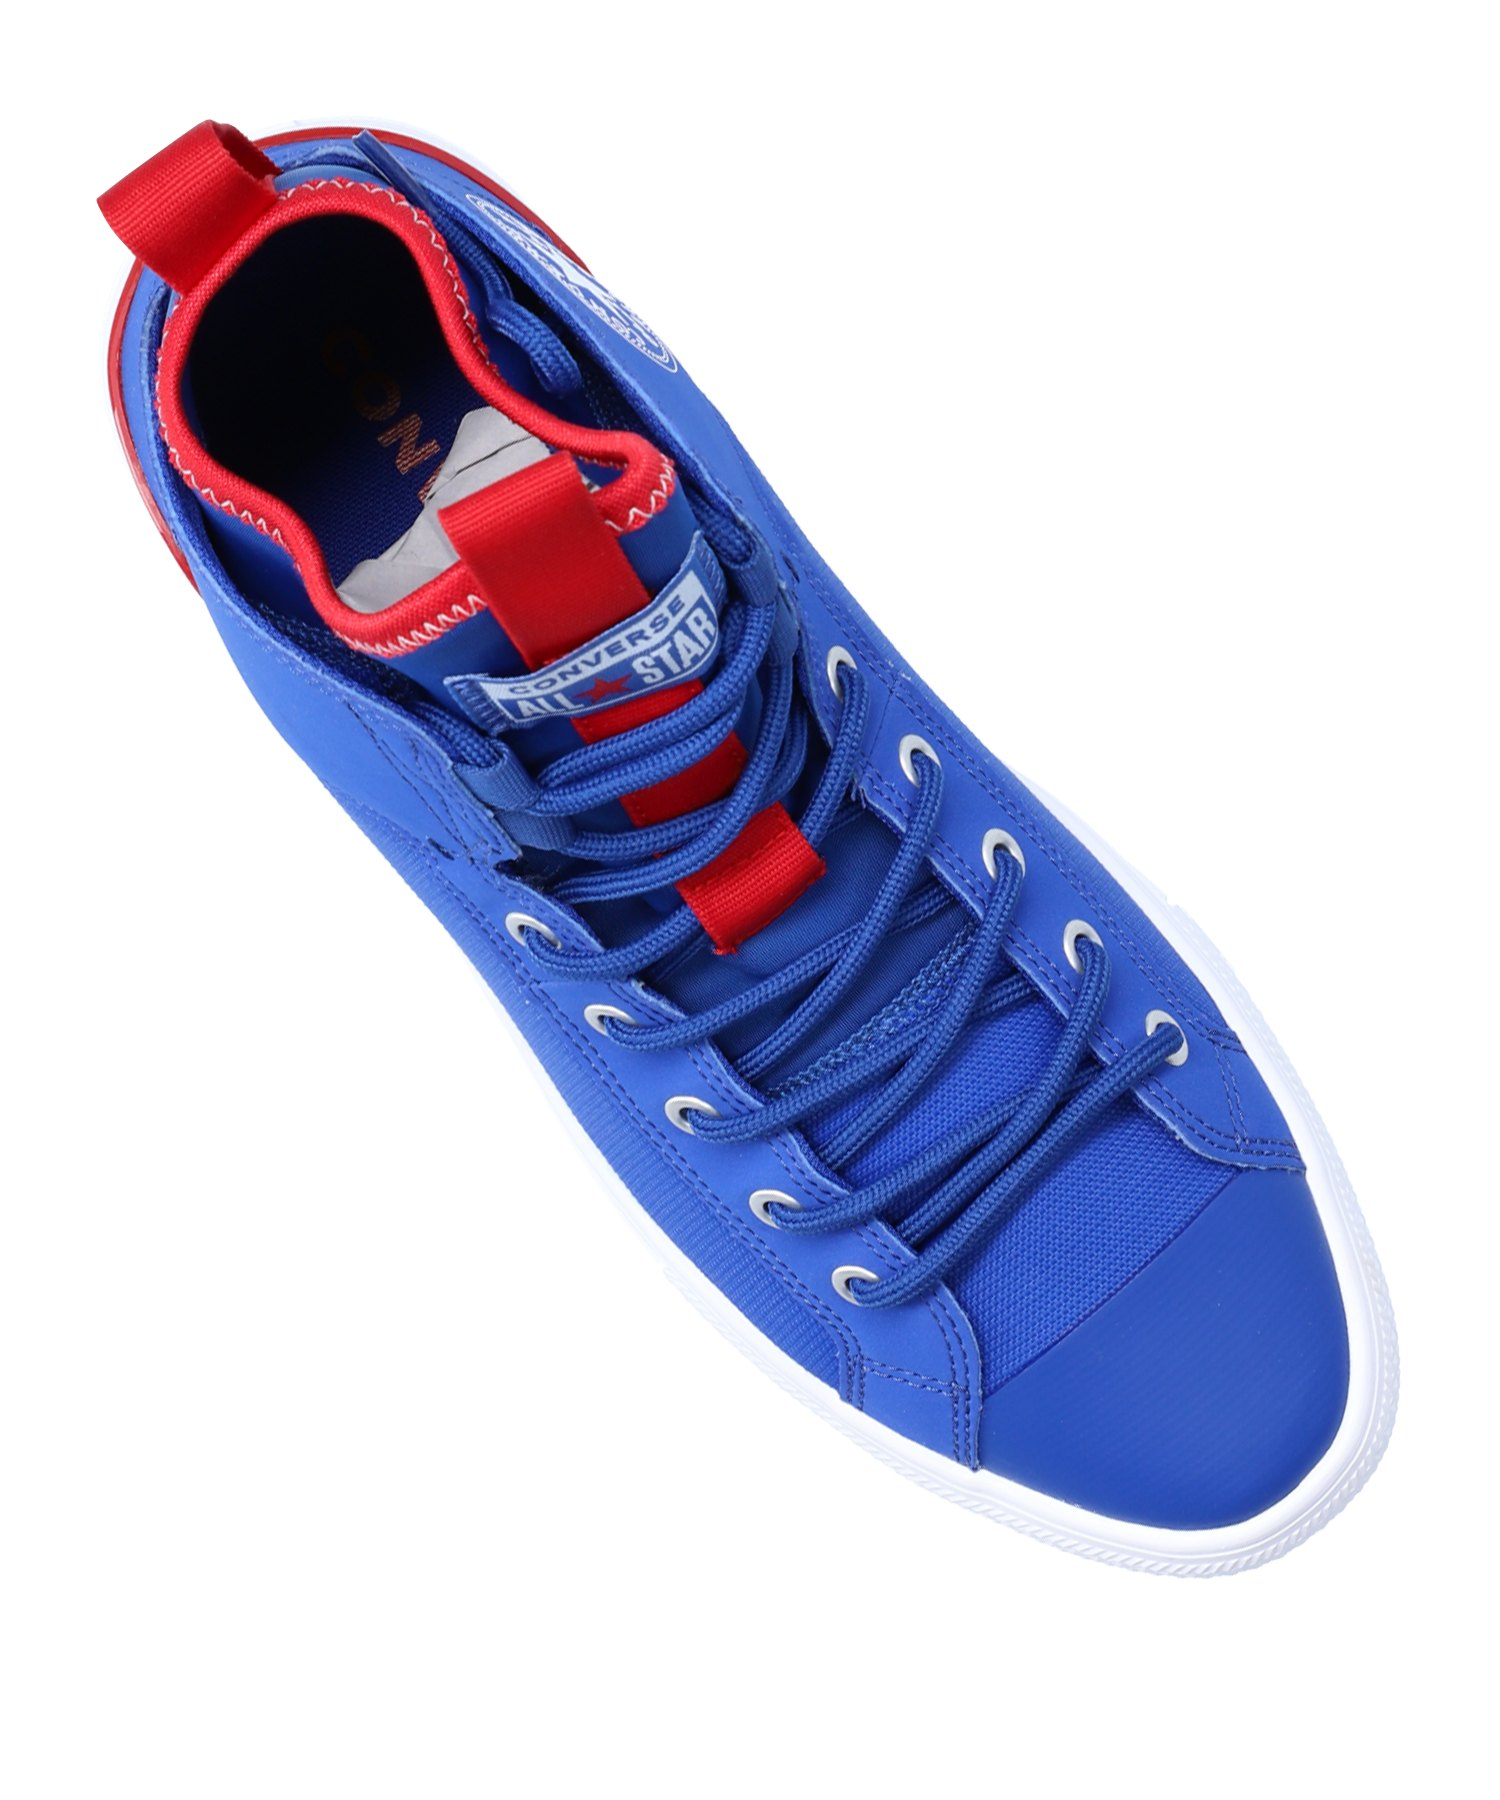 Ct Sneaker F400 Mid As Converse Ultra Blau SzMVUp